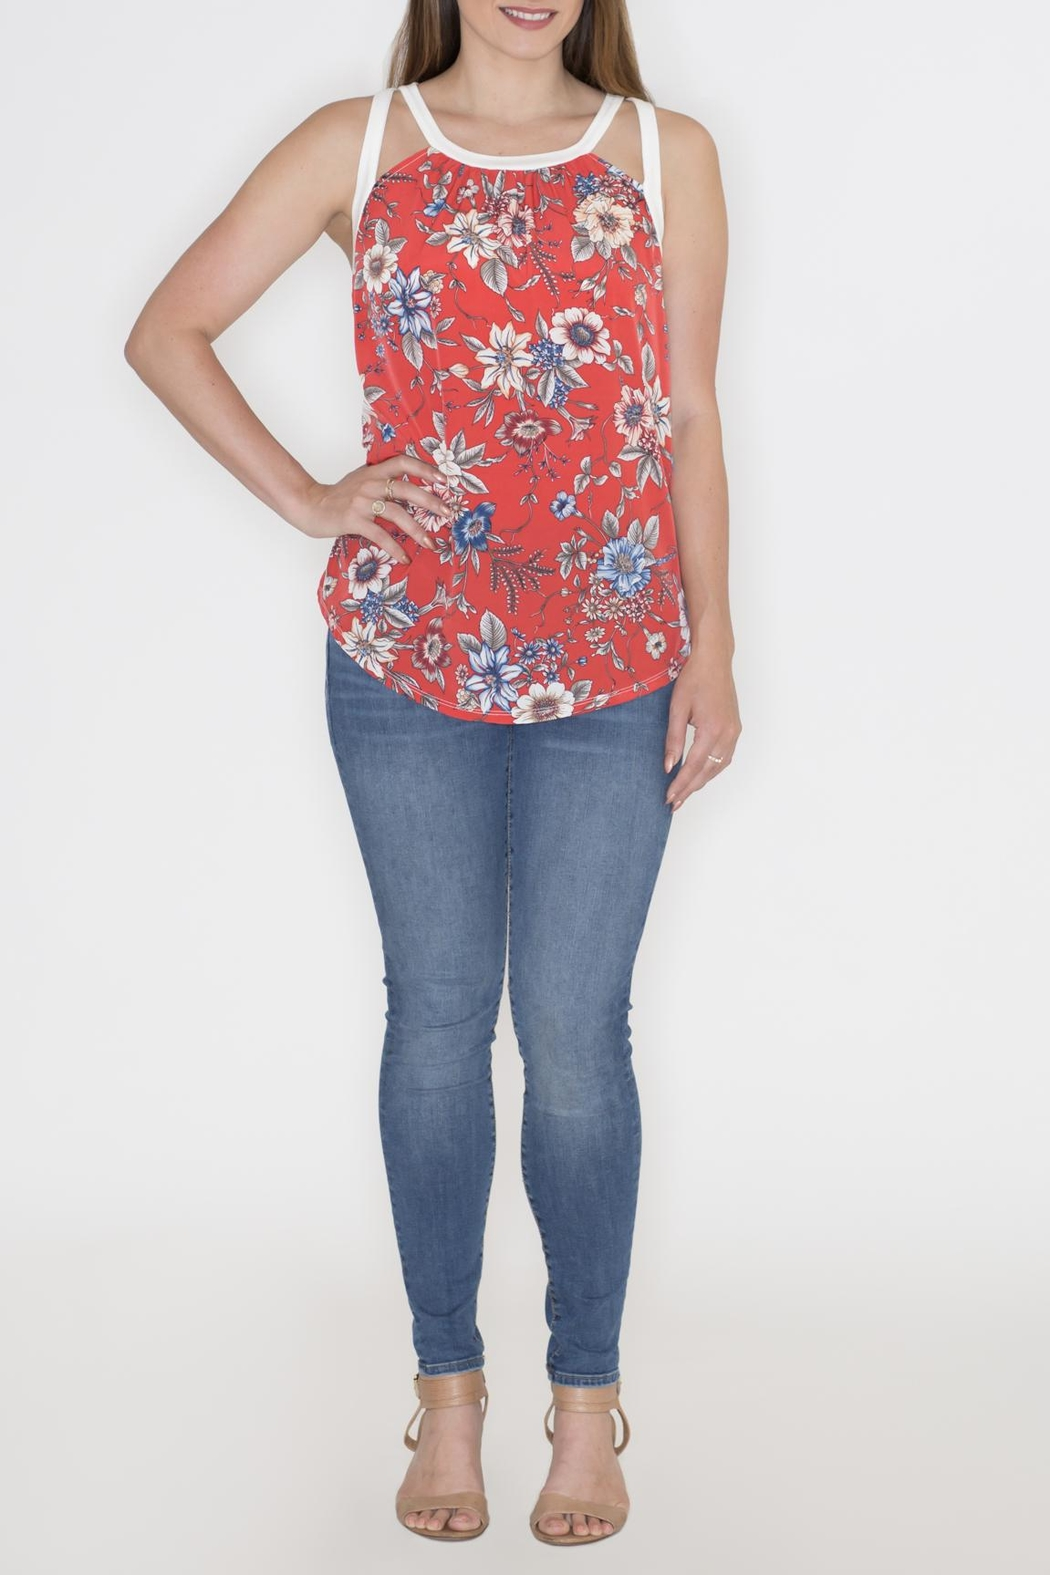 Cherish Floral Cut Out Top - Back Cropped Image